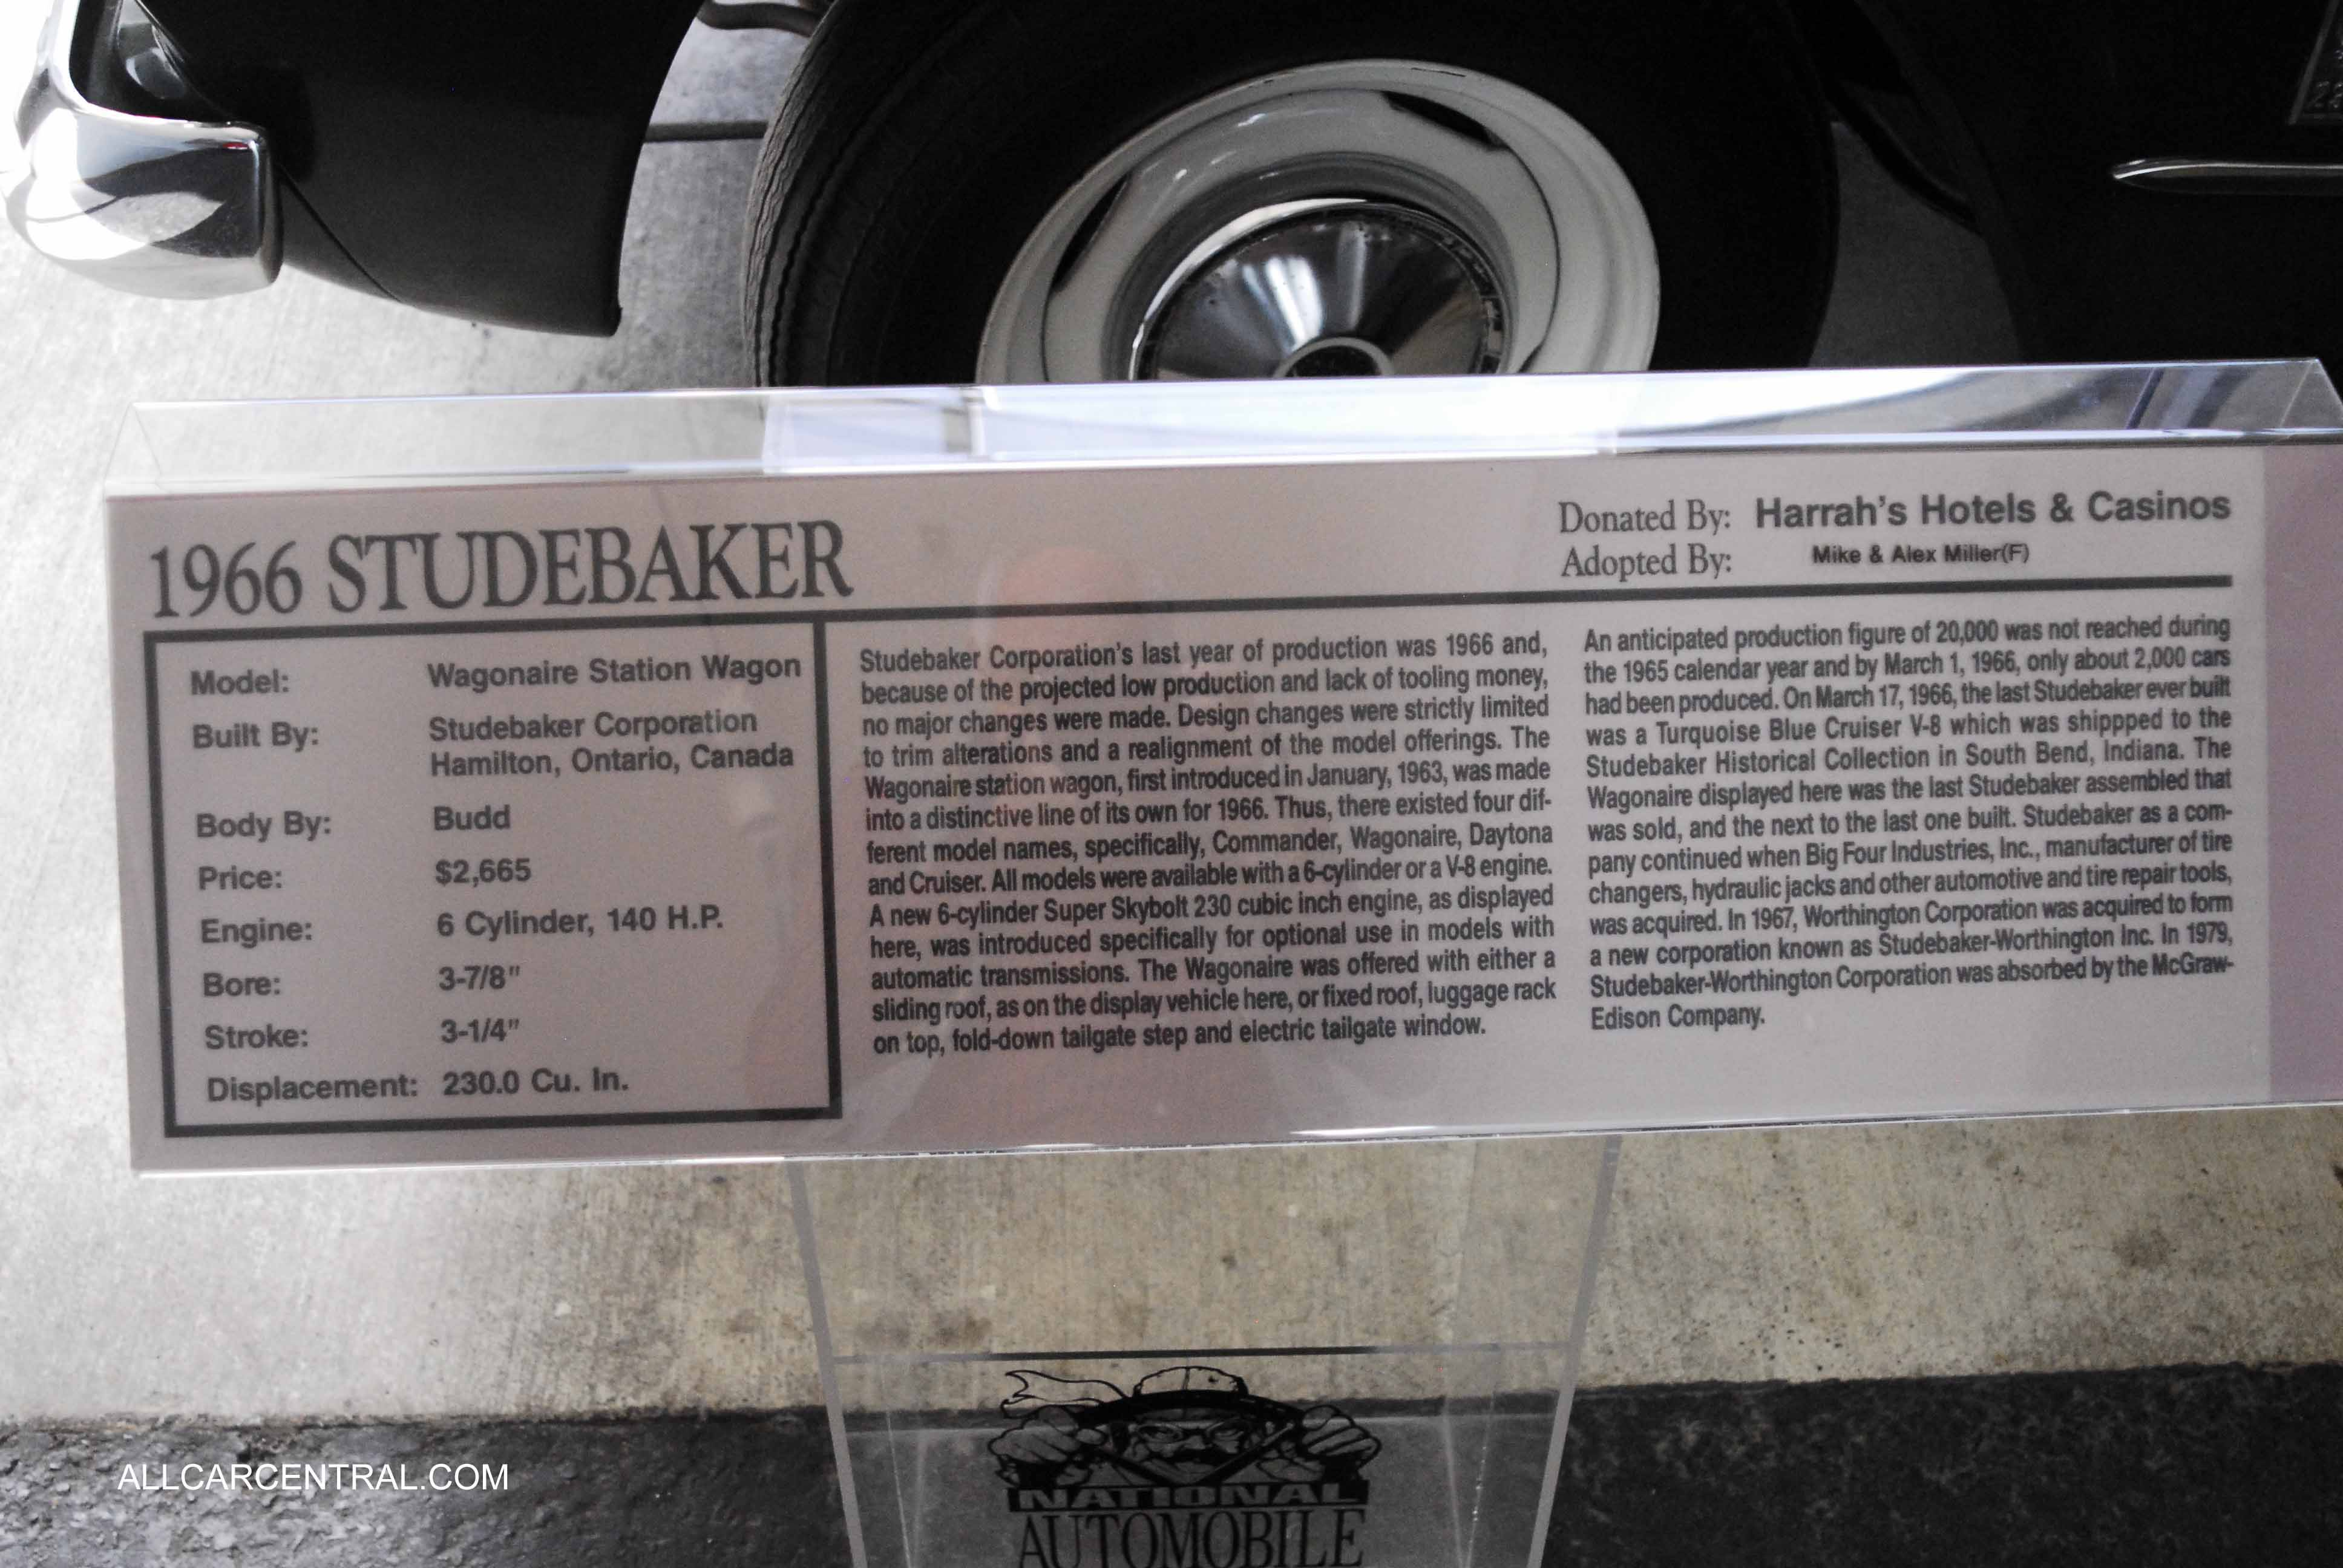 Studebaker photographs and